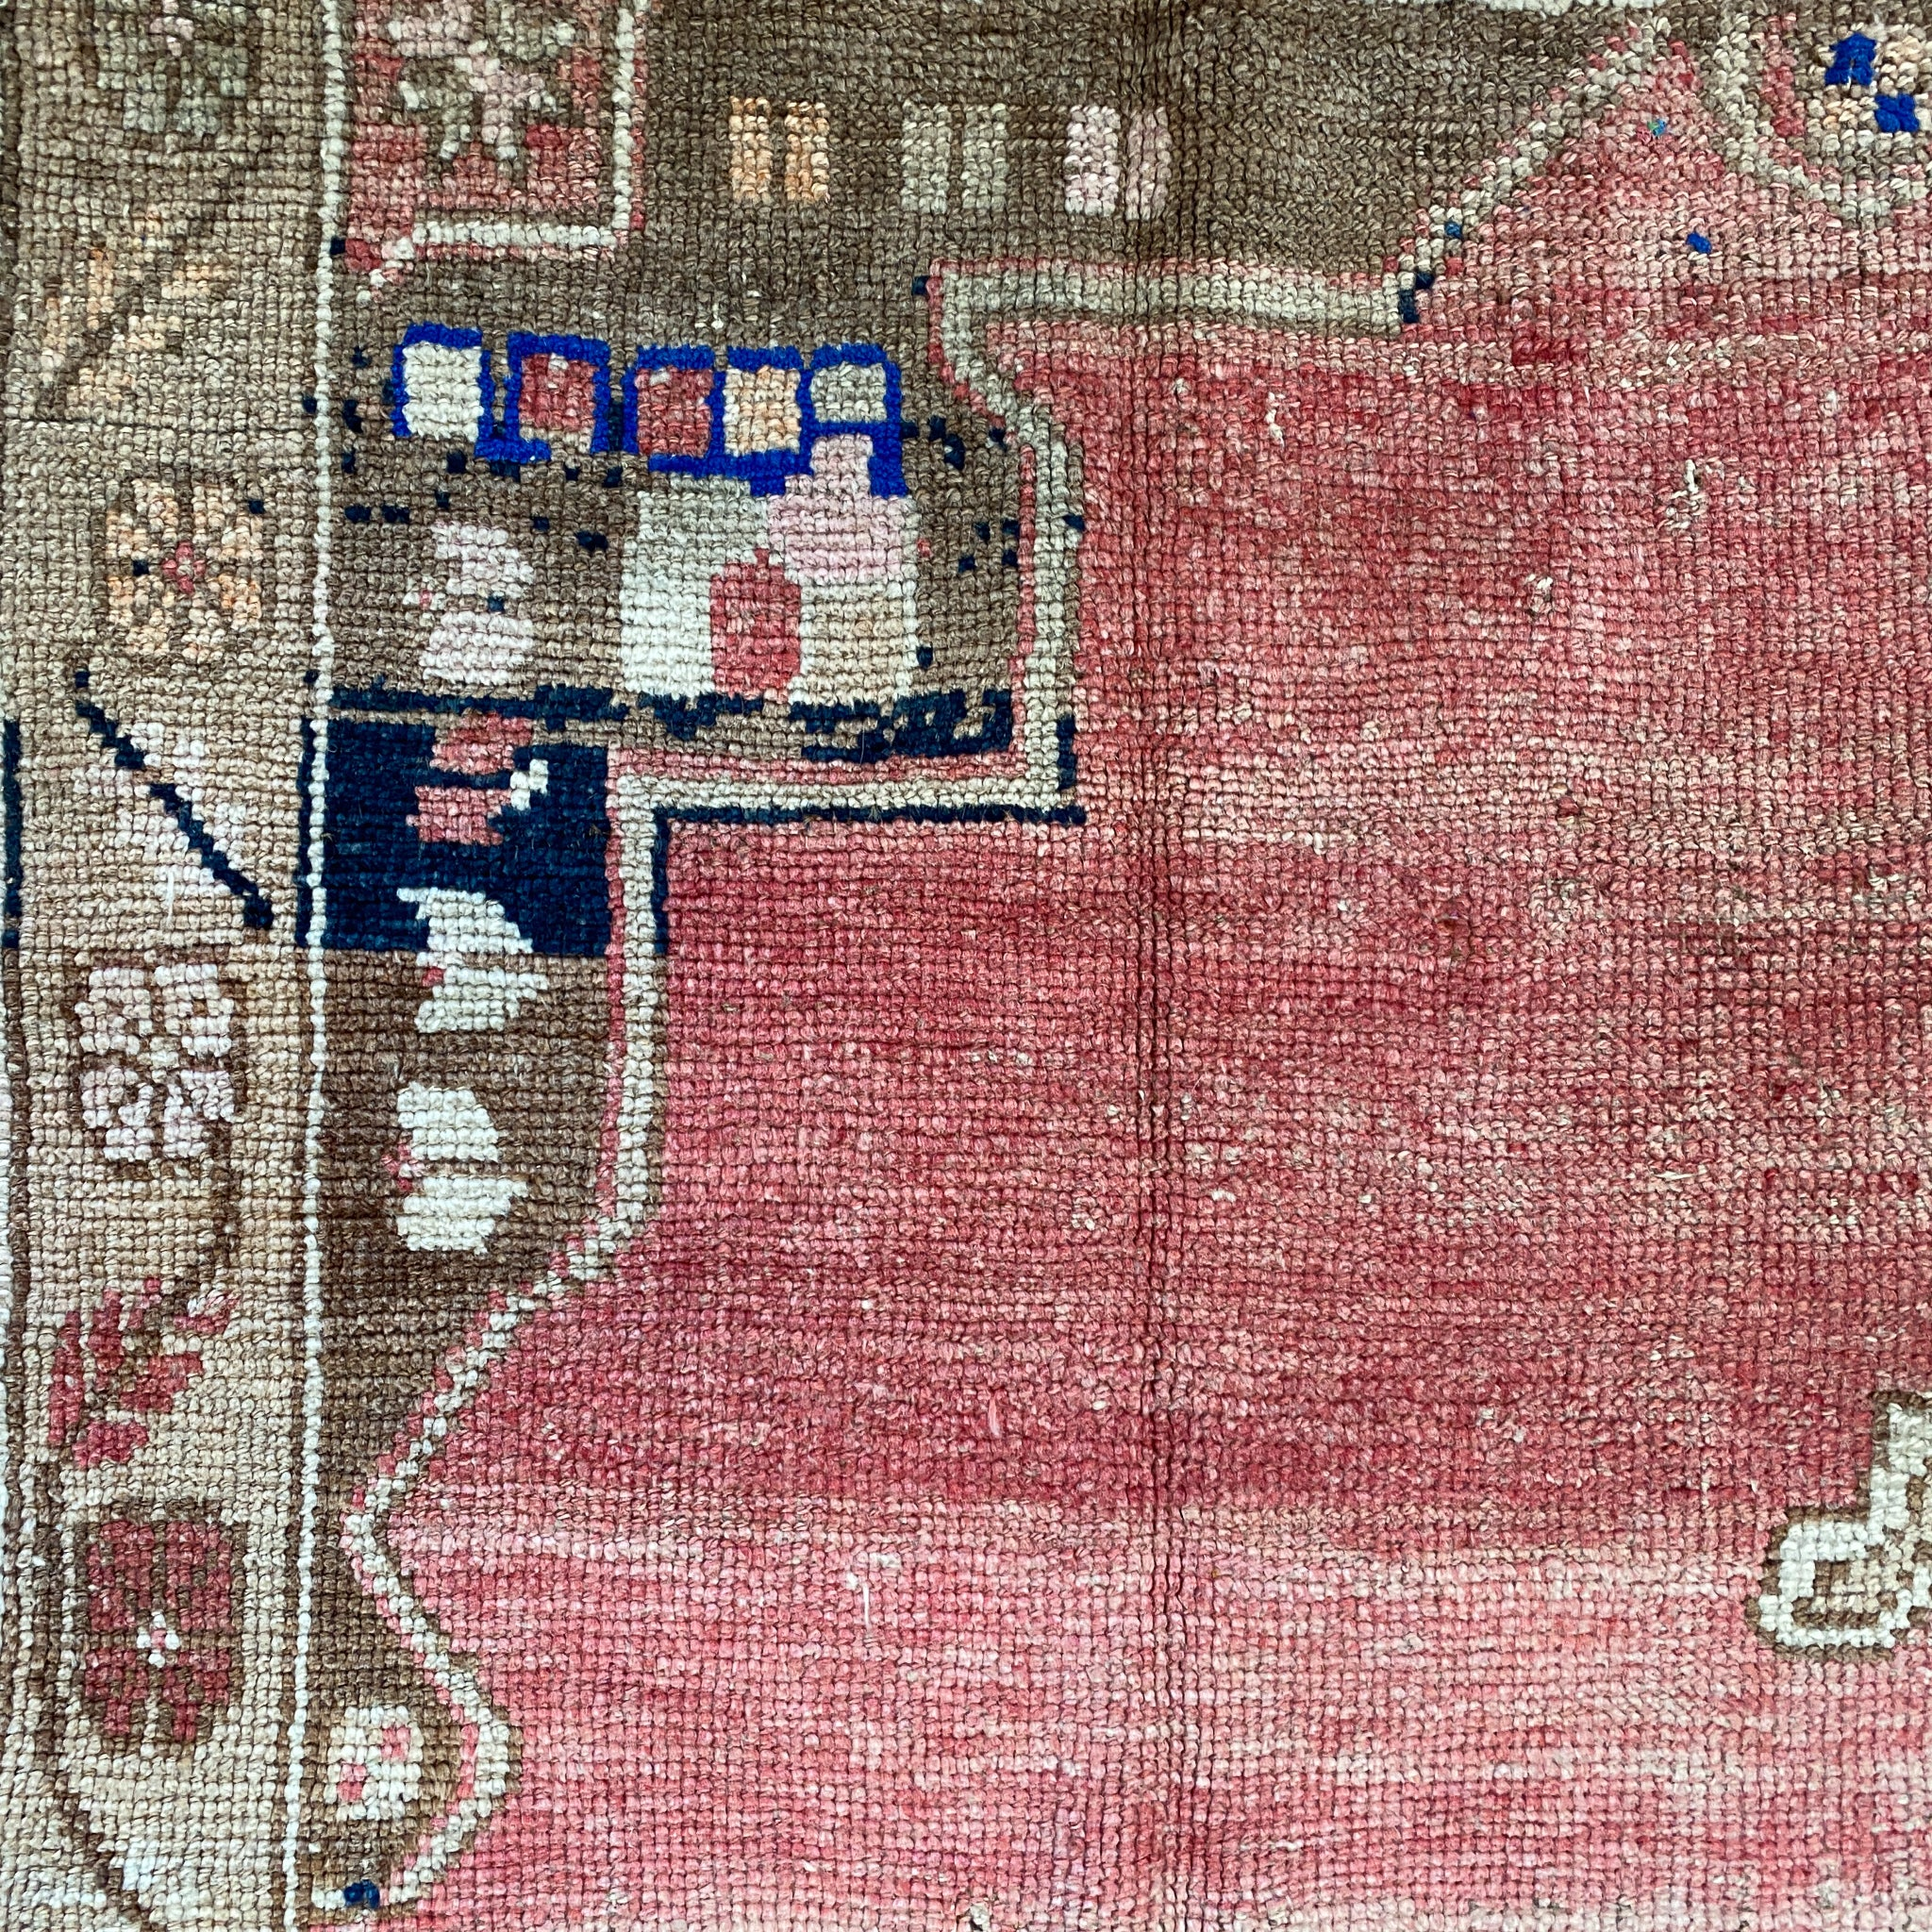 ON HOLD WP 2364 Handwoven Vintage Rug 5'5x12'3